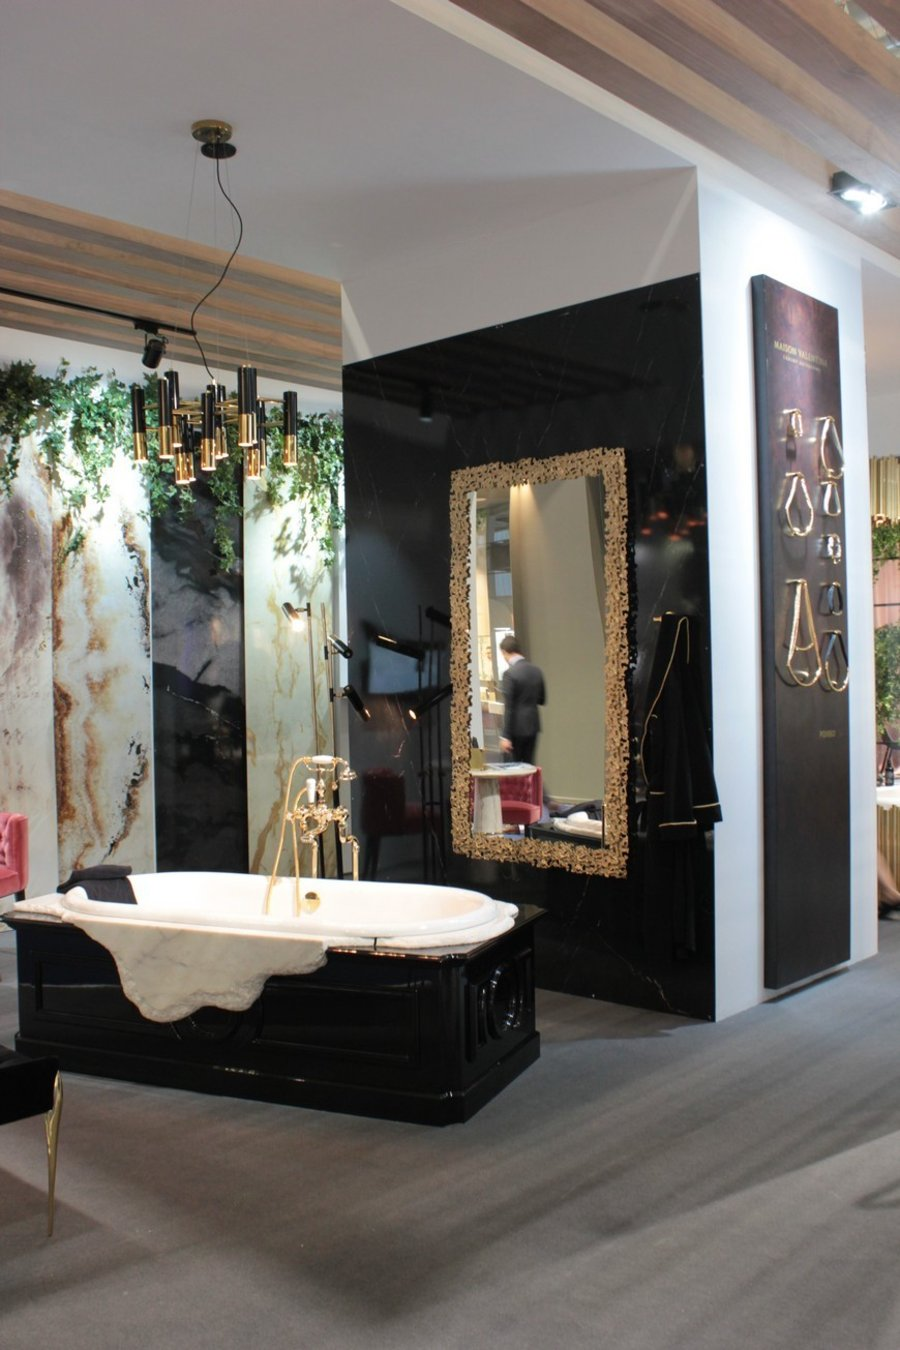 Cersaie 2019 - Highlights from the Luxury Bathroom Event cersaie 2019 Cersaie 2019 – Highlights from the Luxury Bathroom Event Cersaie 2019 Highlights from the Luxury Bathroom Event 3